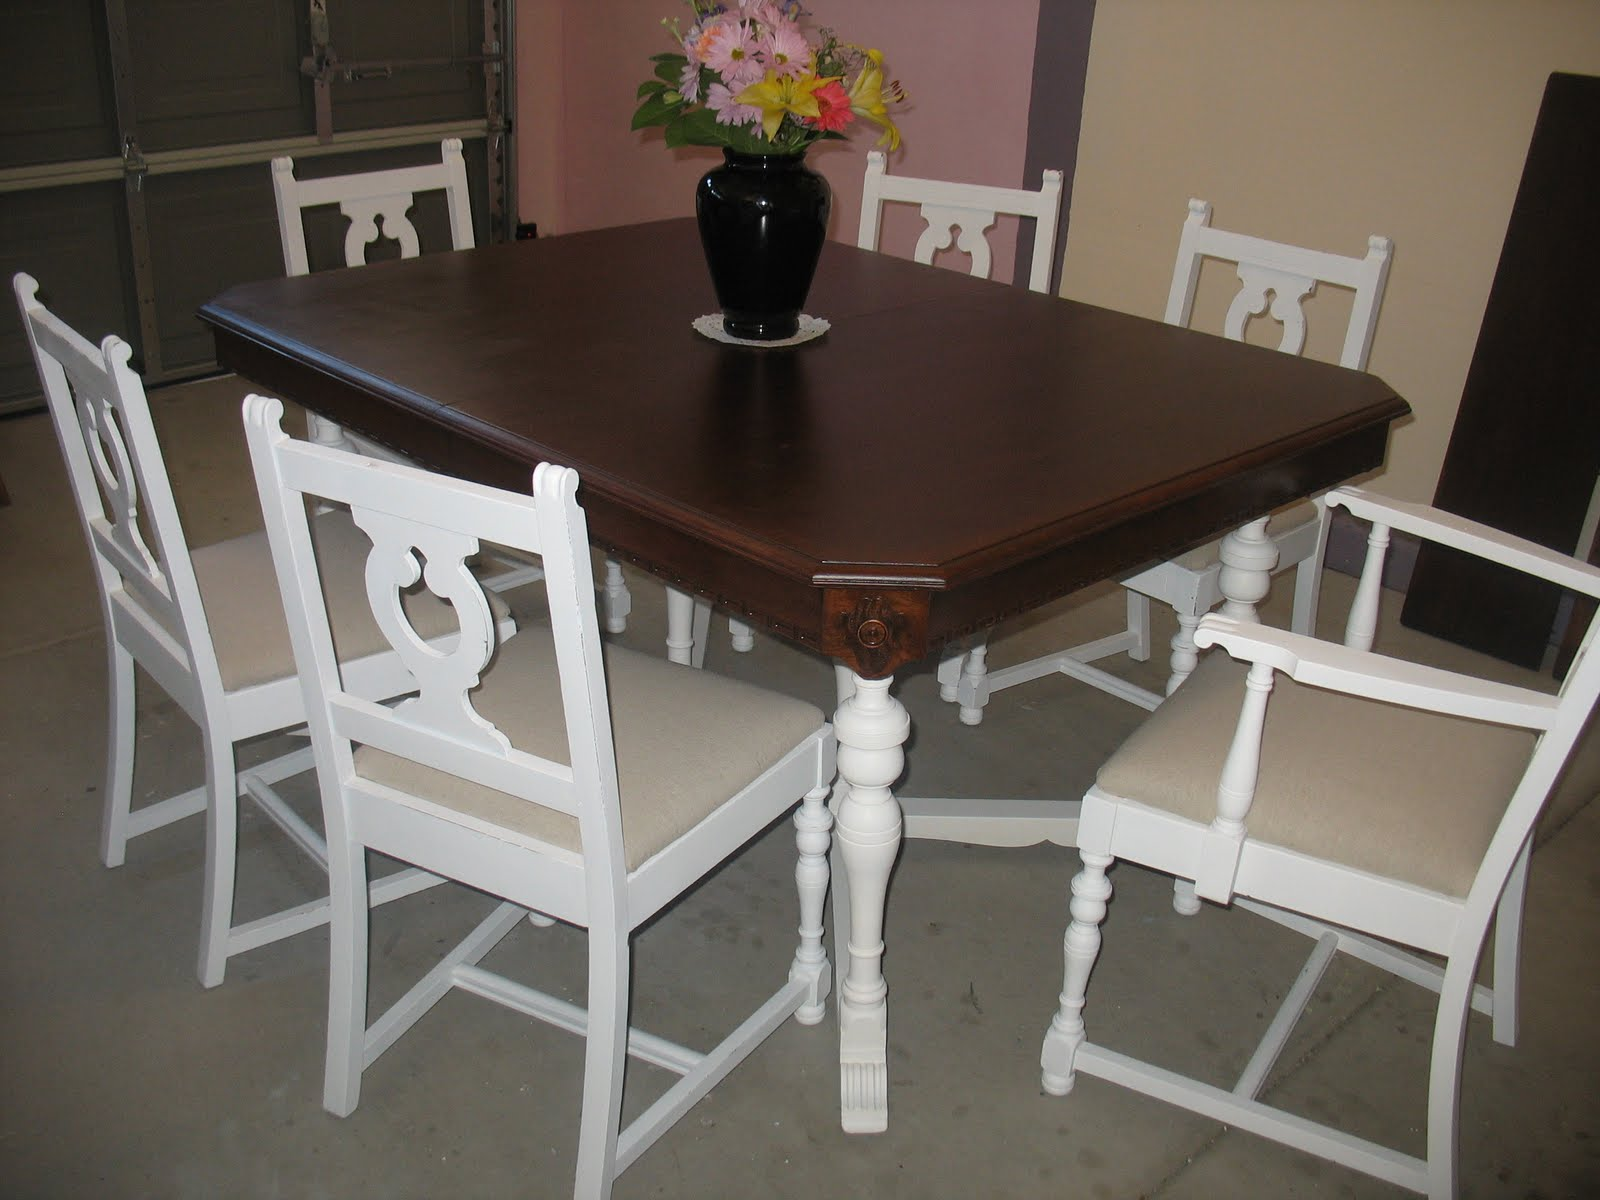 shabby chic redo and redo again dining redo kitchen table 2nd Redo and all Shabbied drop cloth seat covers white base and white chairs lightly distressed